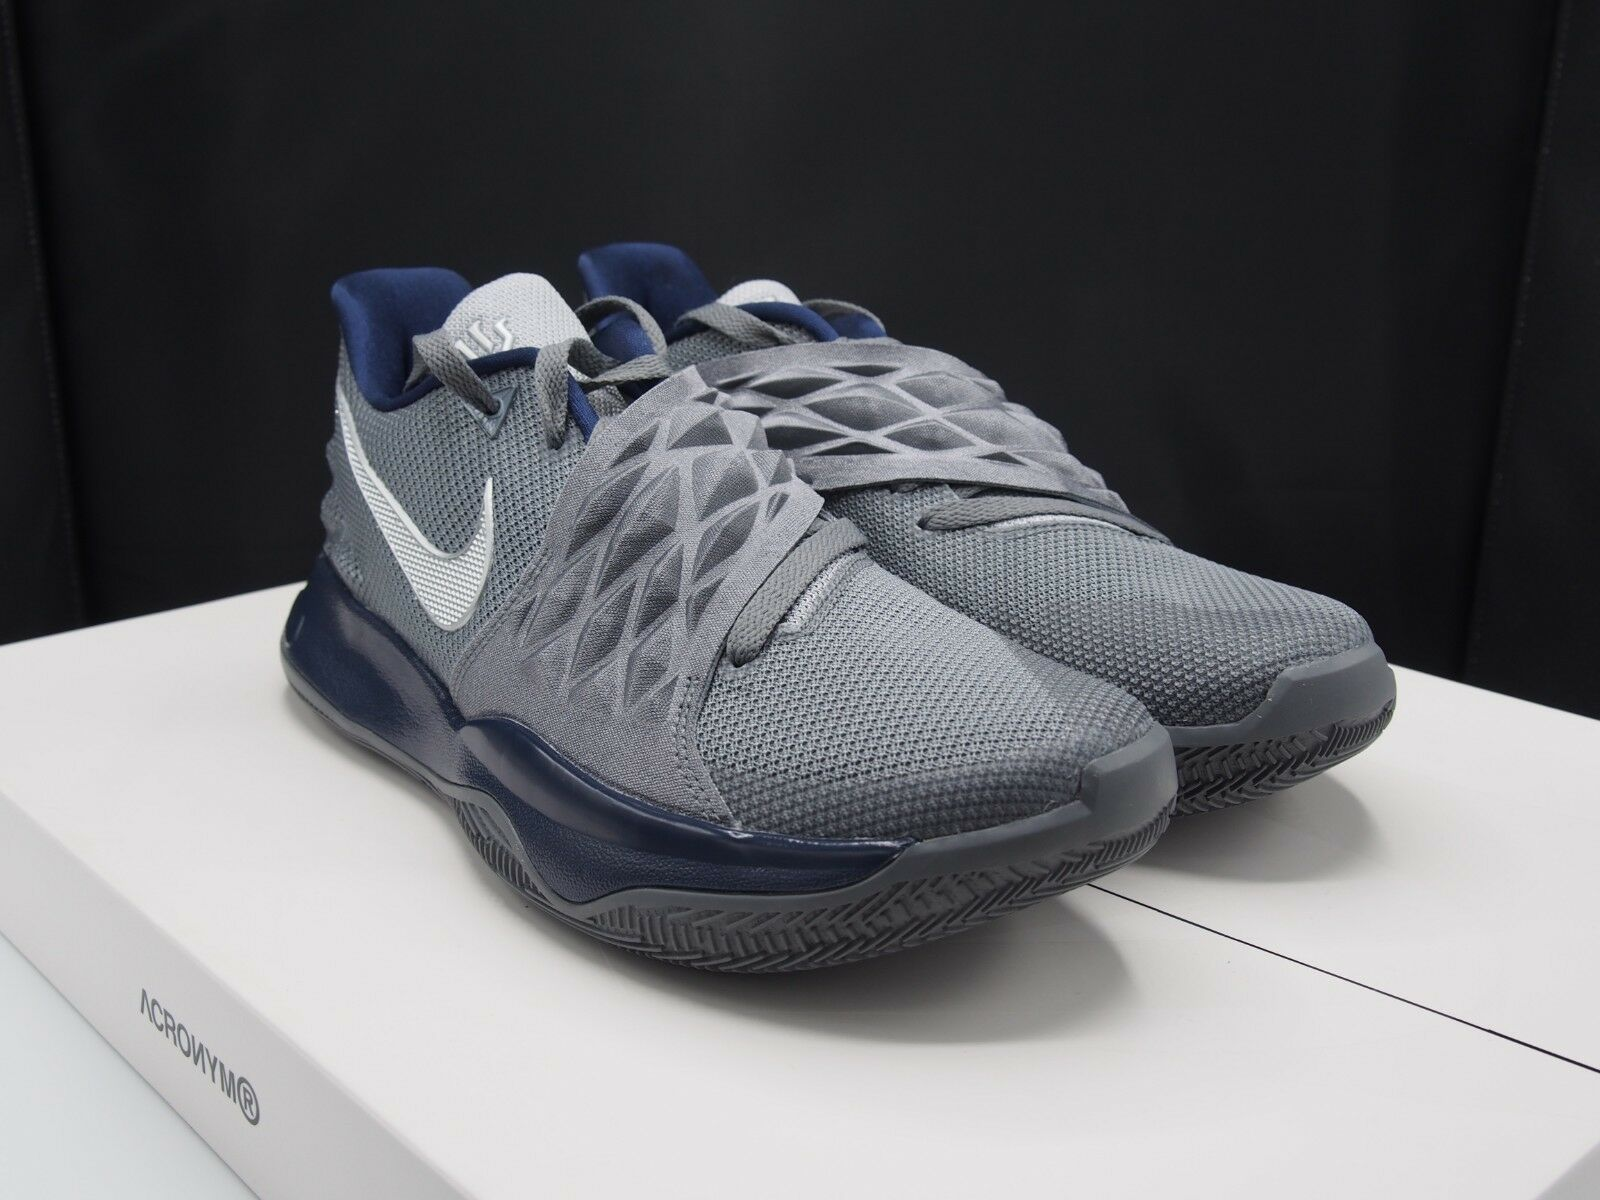 Nike Kyrie 1 Low ID AT8588-999 Men's size 9.5 US